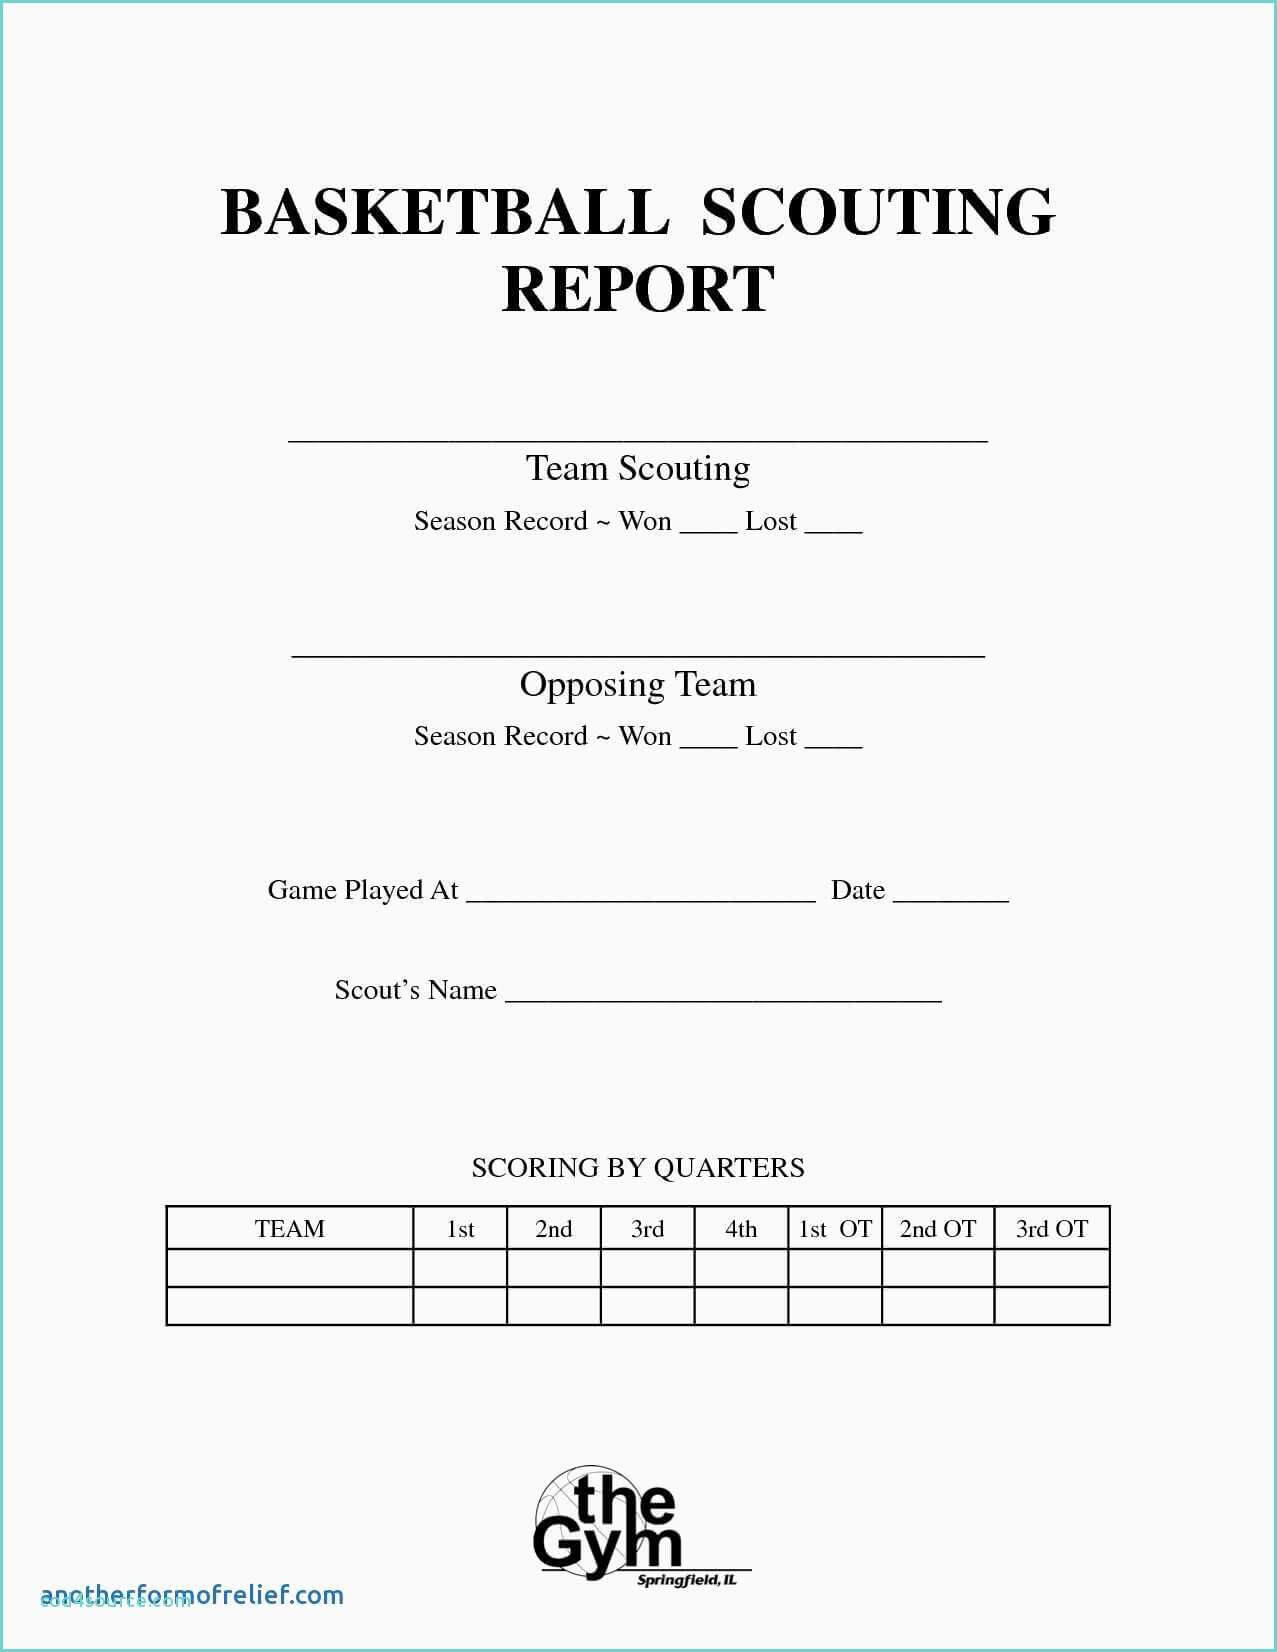 Report Examples College Basketball Scouting Template Team Regarding Scouting Report Basketball Template